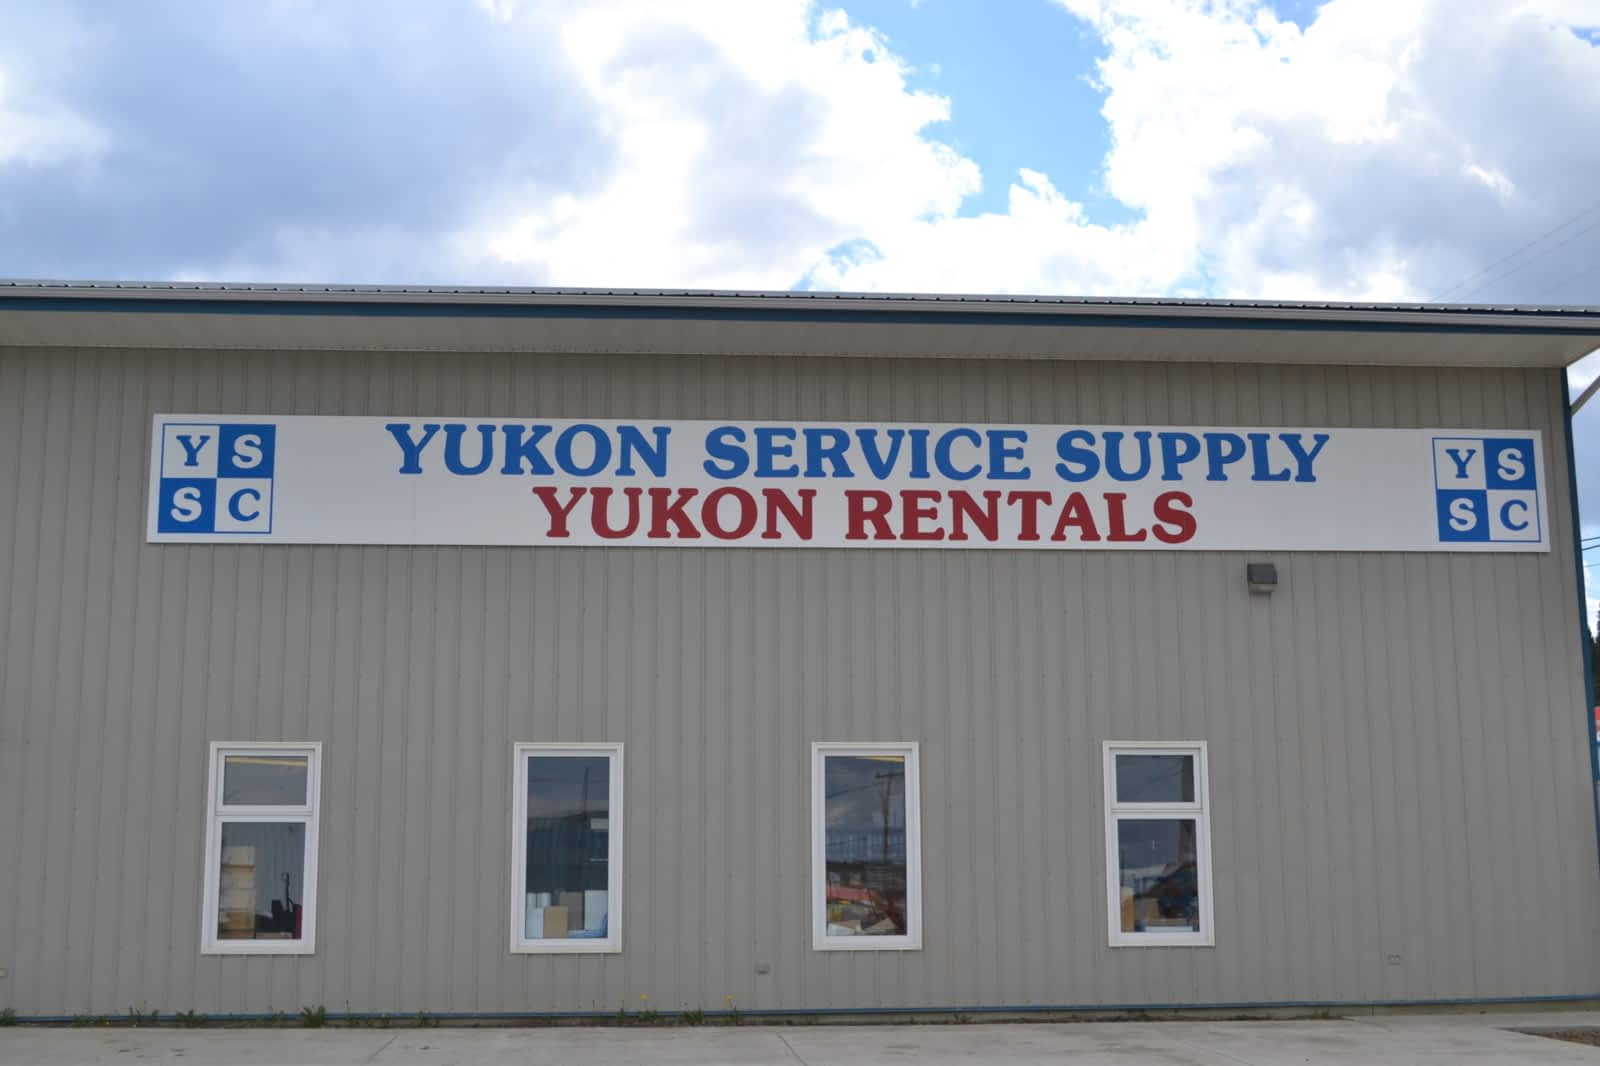 Yukon Service Supply